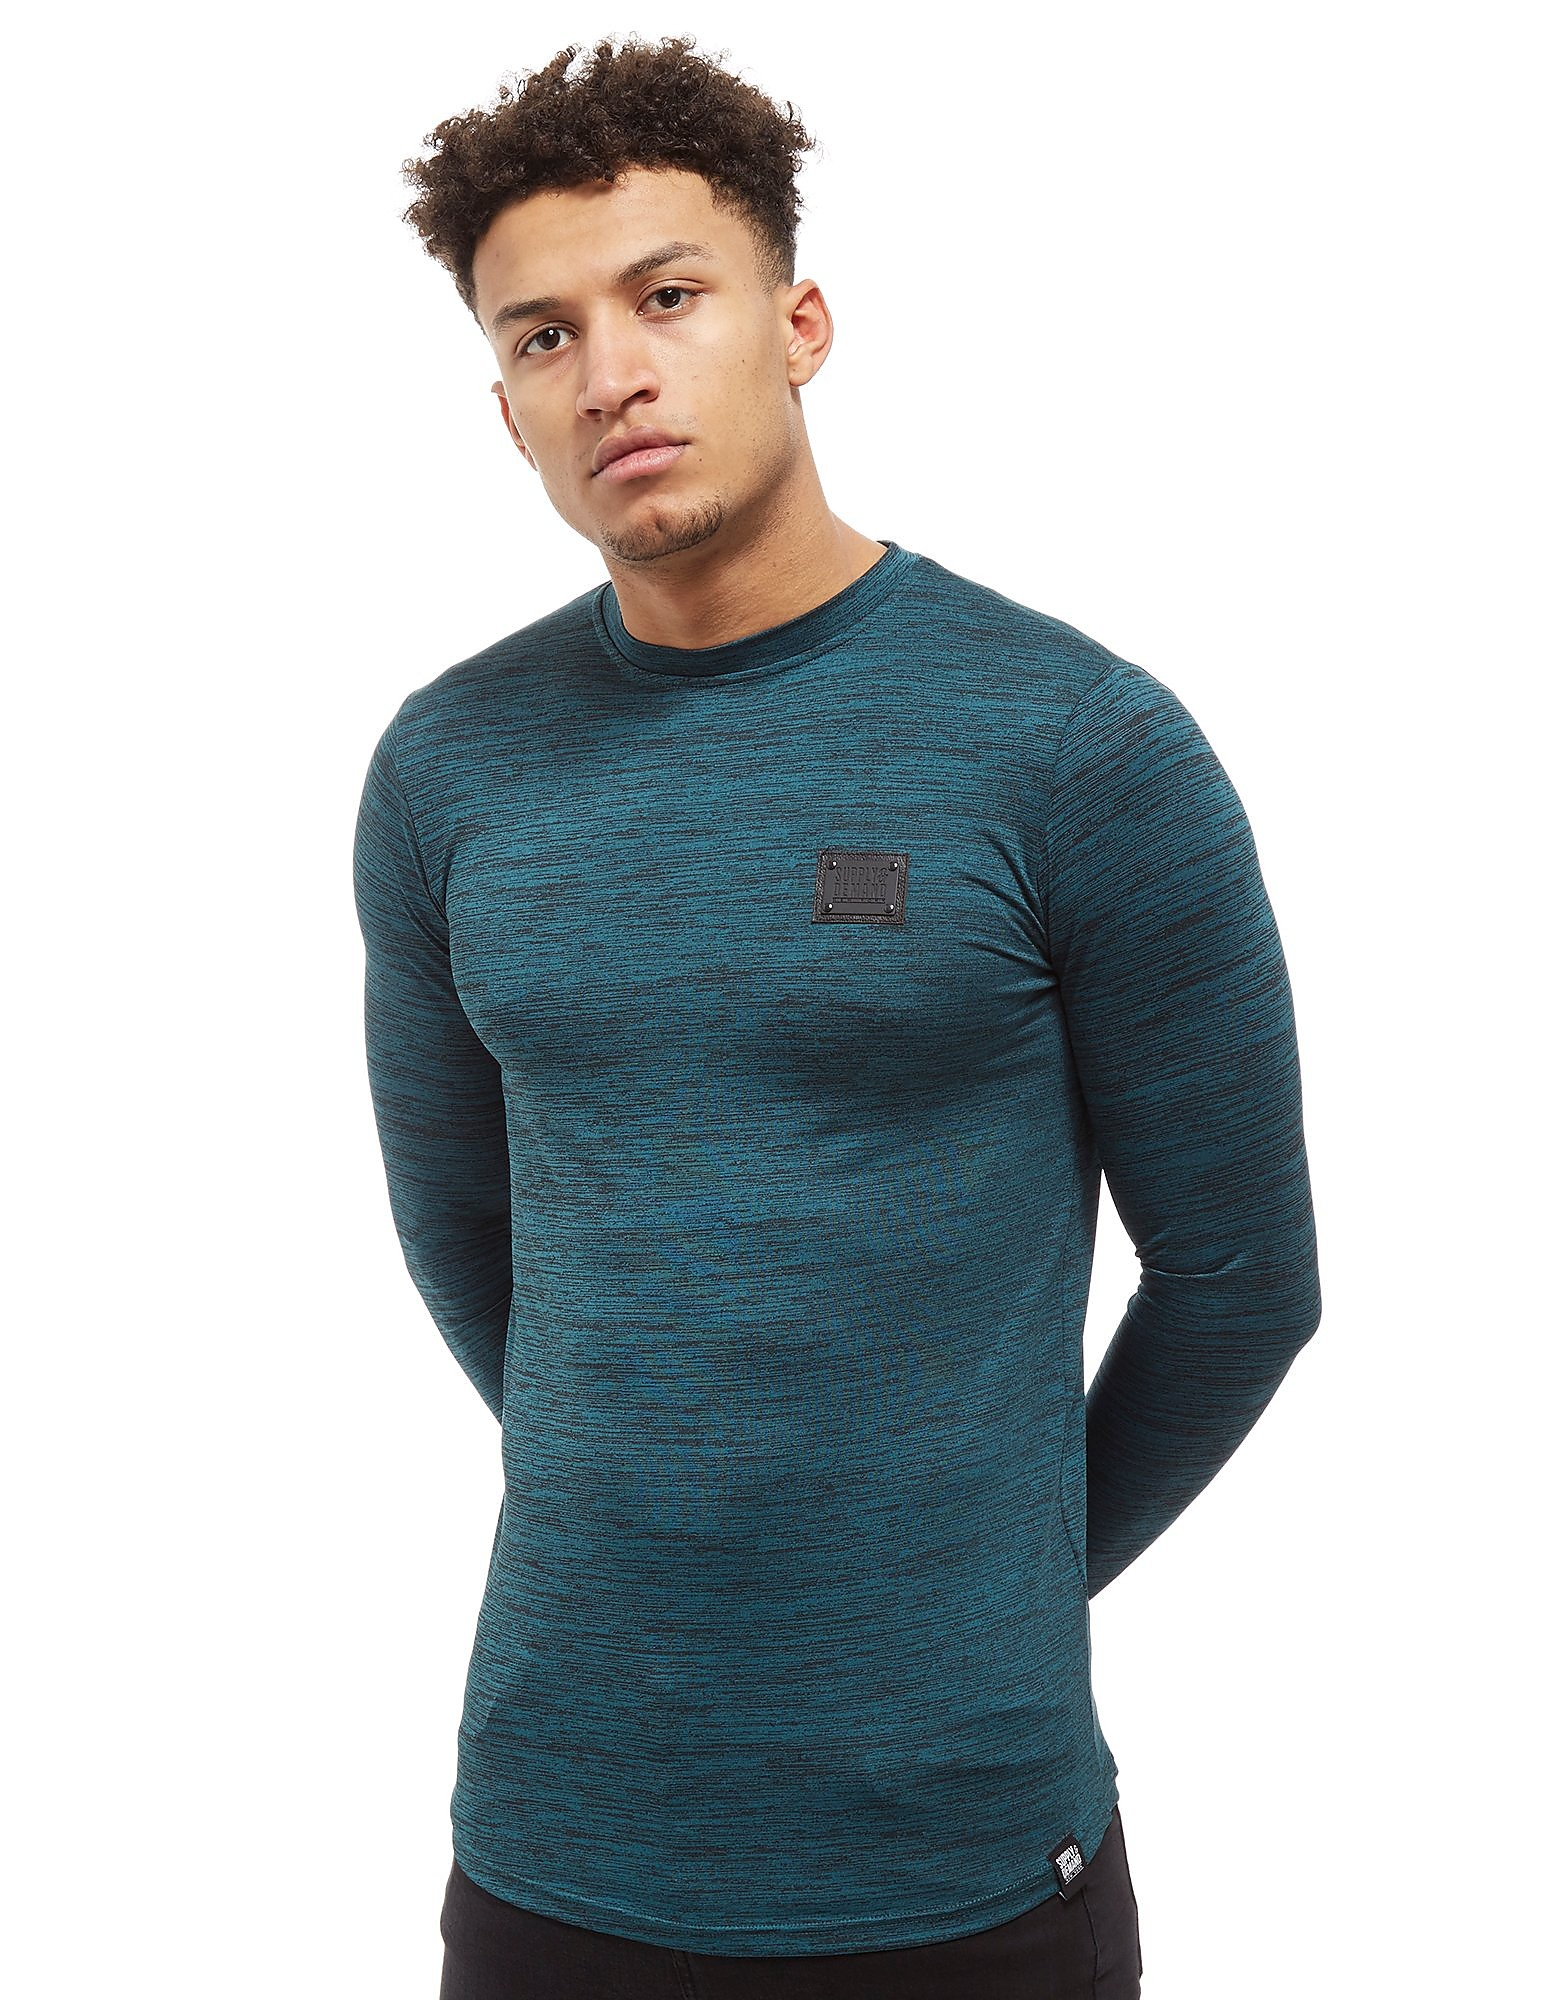 Supply & Demand Hendrick Long Sleeve T-Shirt - Only at JD, Teal